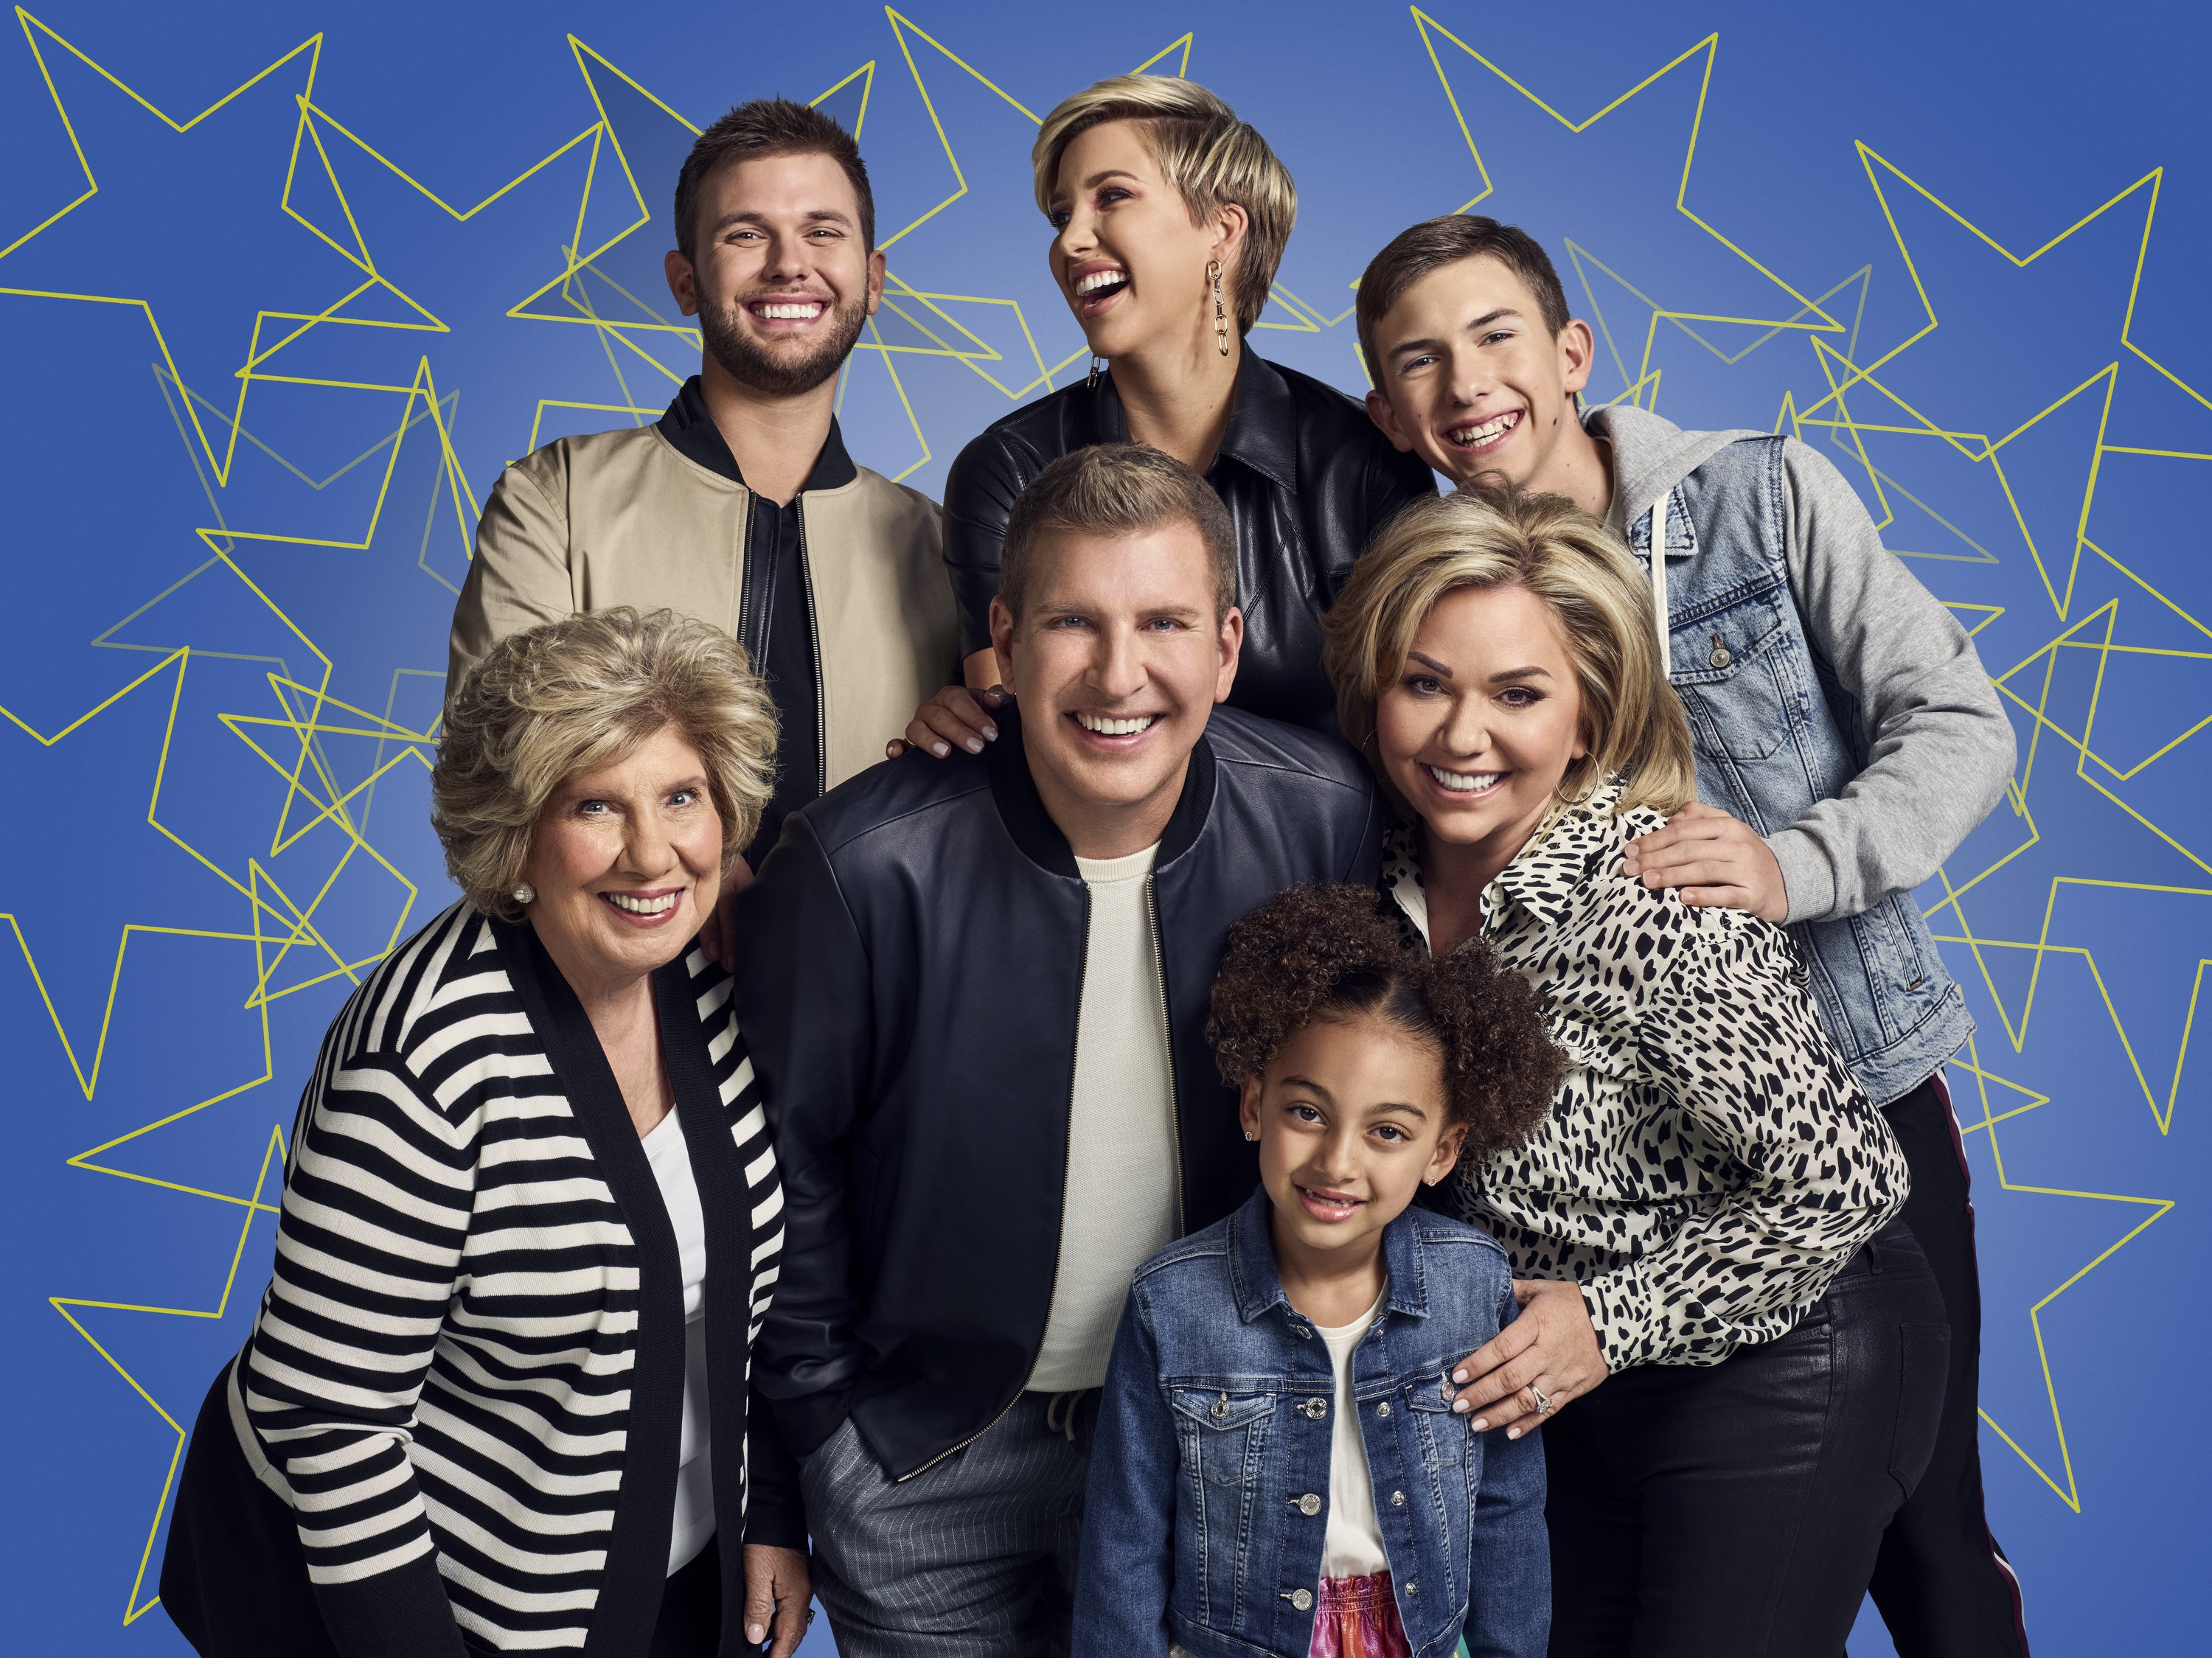 """The Chrisley family poses for season eight of """"Chrisley Knows Best"""" on March 9, 2020 